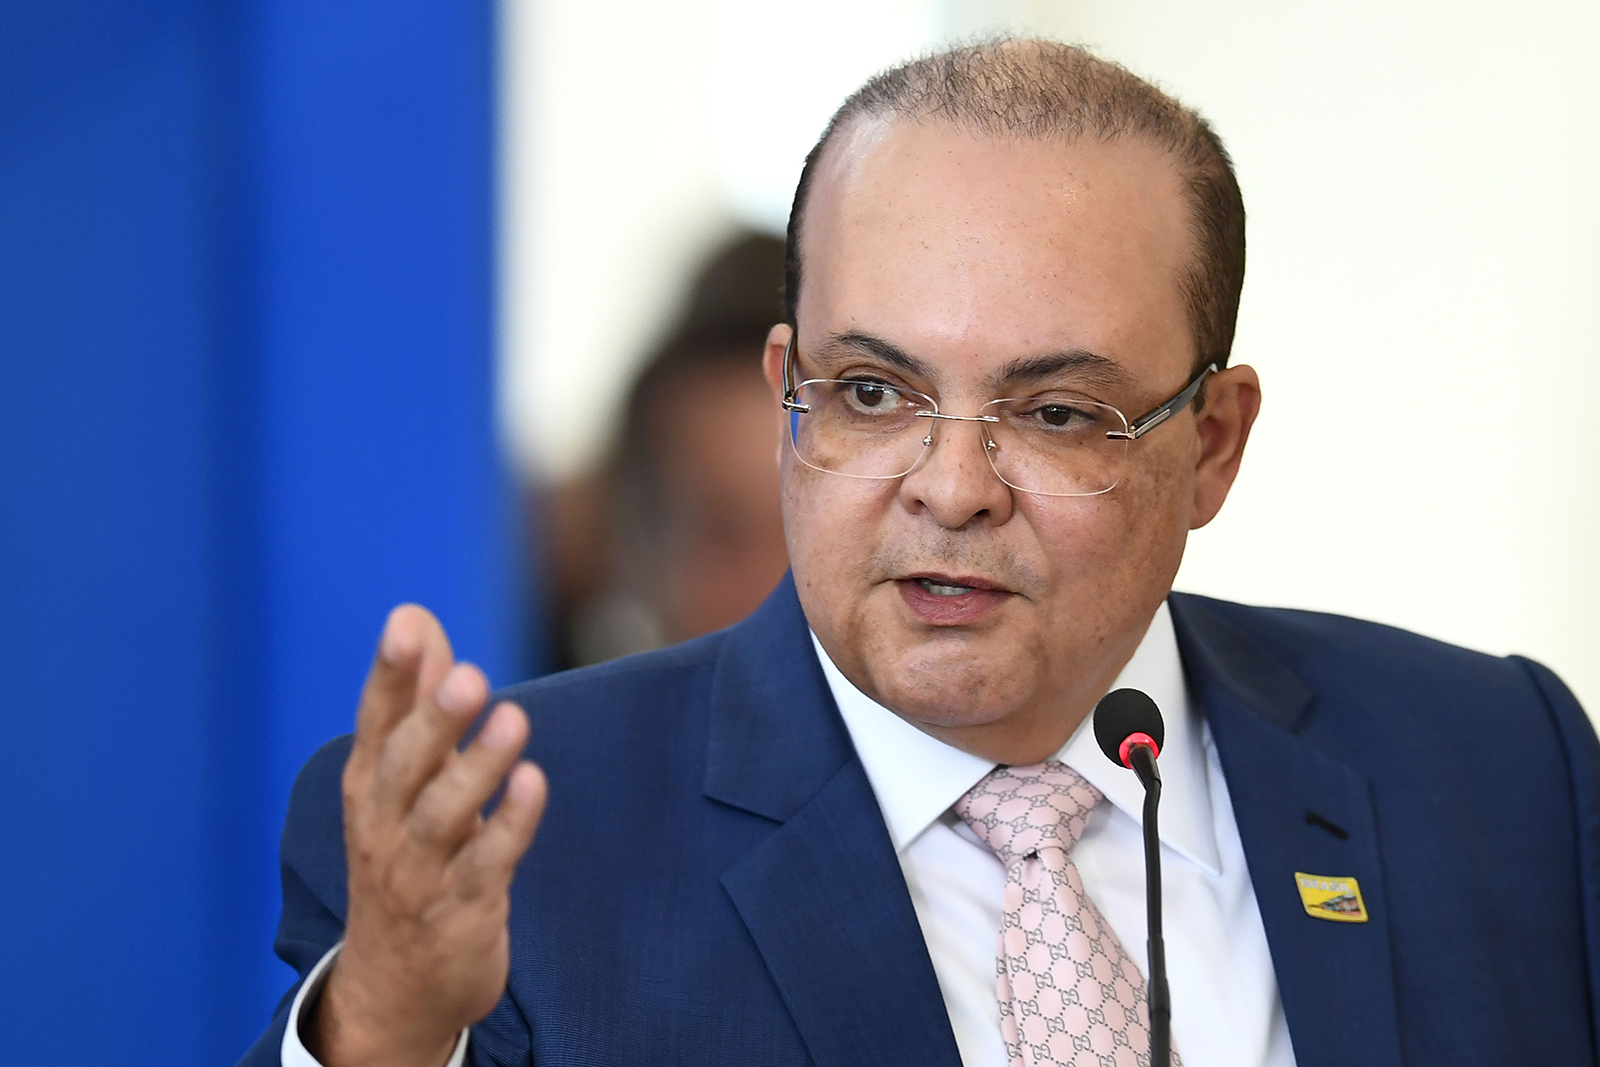 Brazilian Federal District Gov. Ibaneis Rocha delivers a speech at Planalto Palace in Brasilia, Brazil on August 28, 2019.